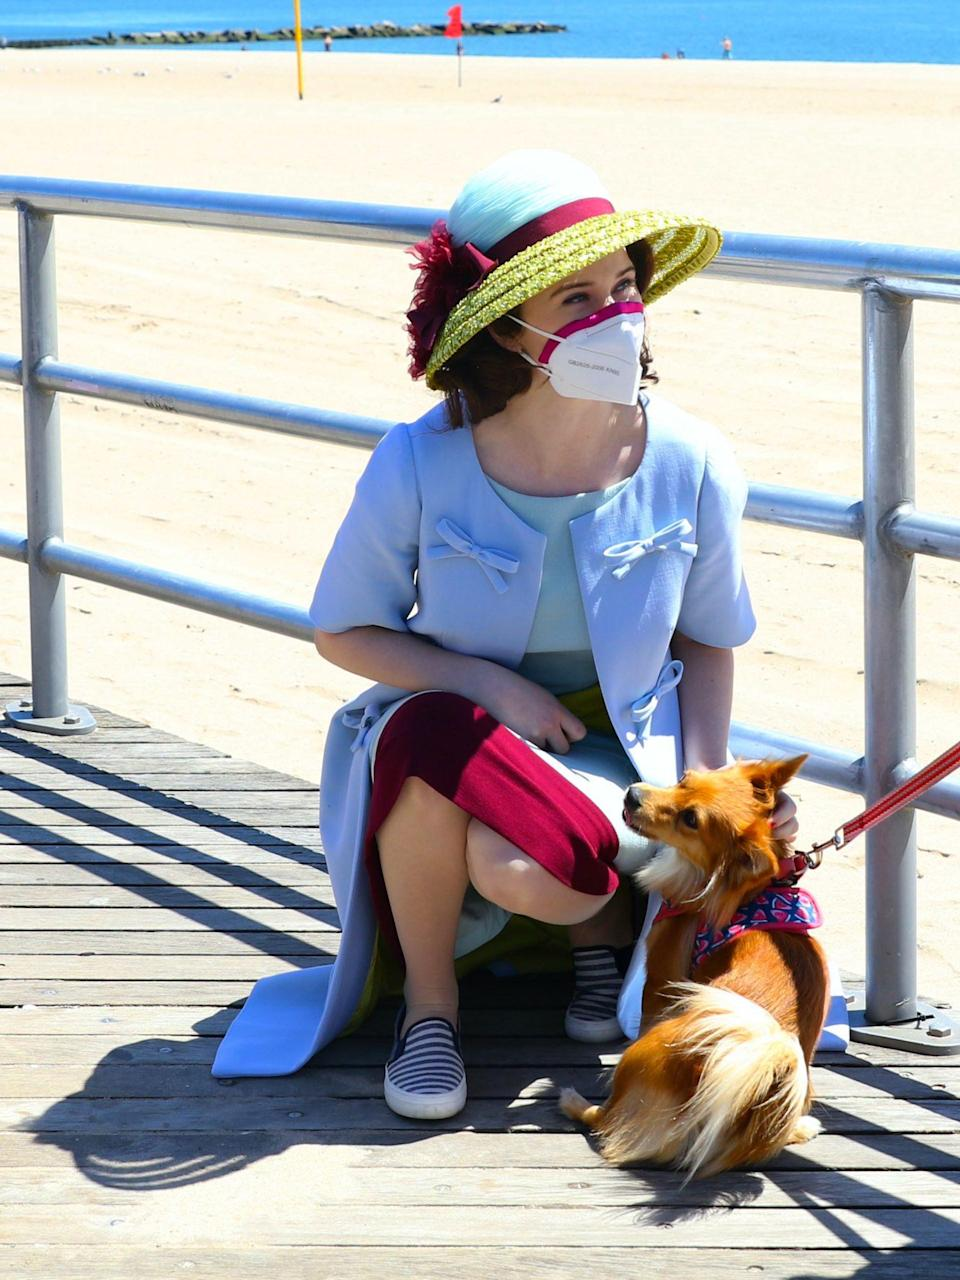 <p>If you're not stopping everything to give a dog a quick scratch, what are you doing?</p>